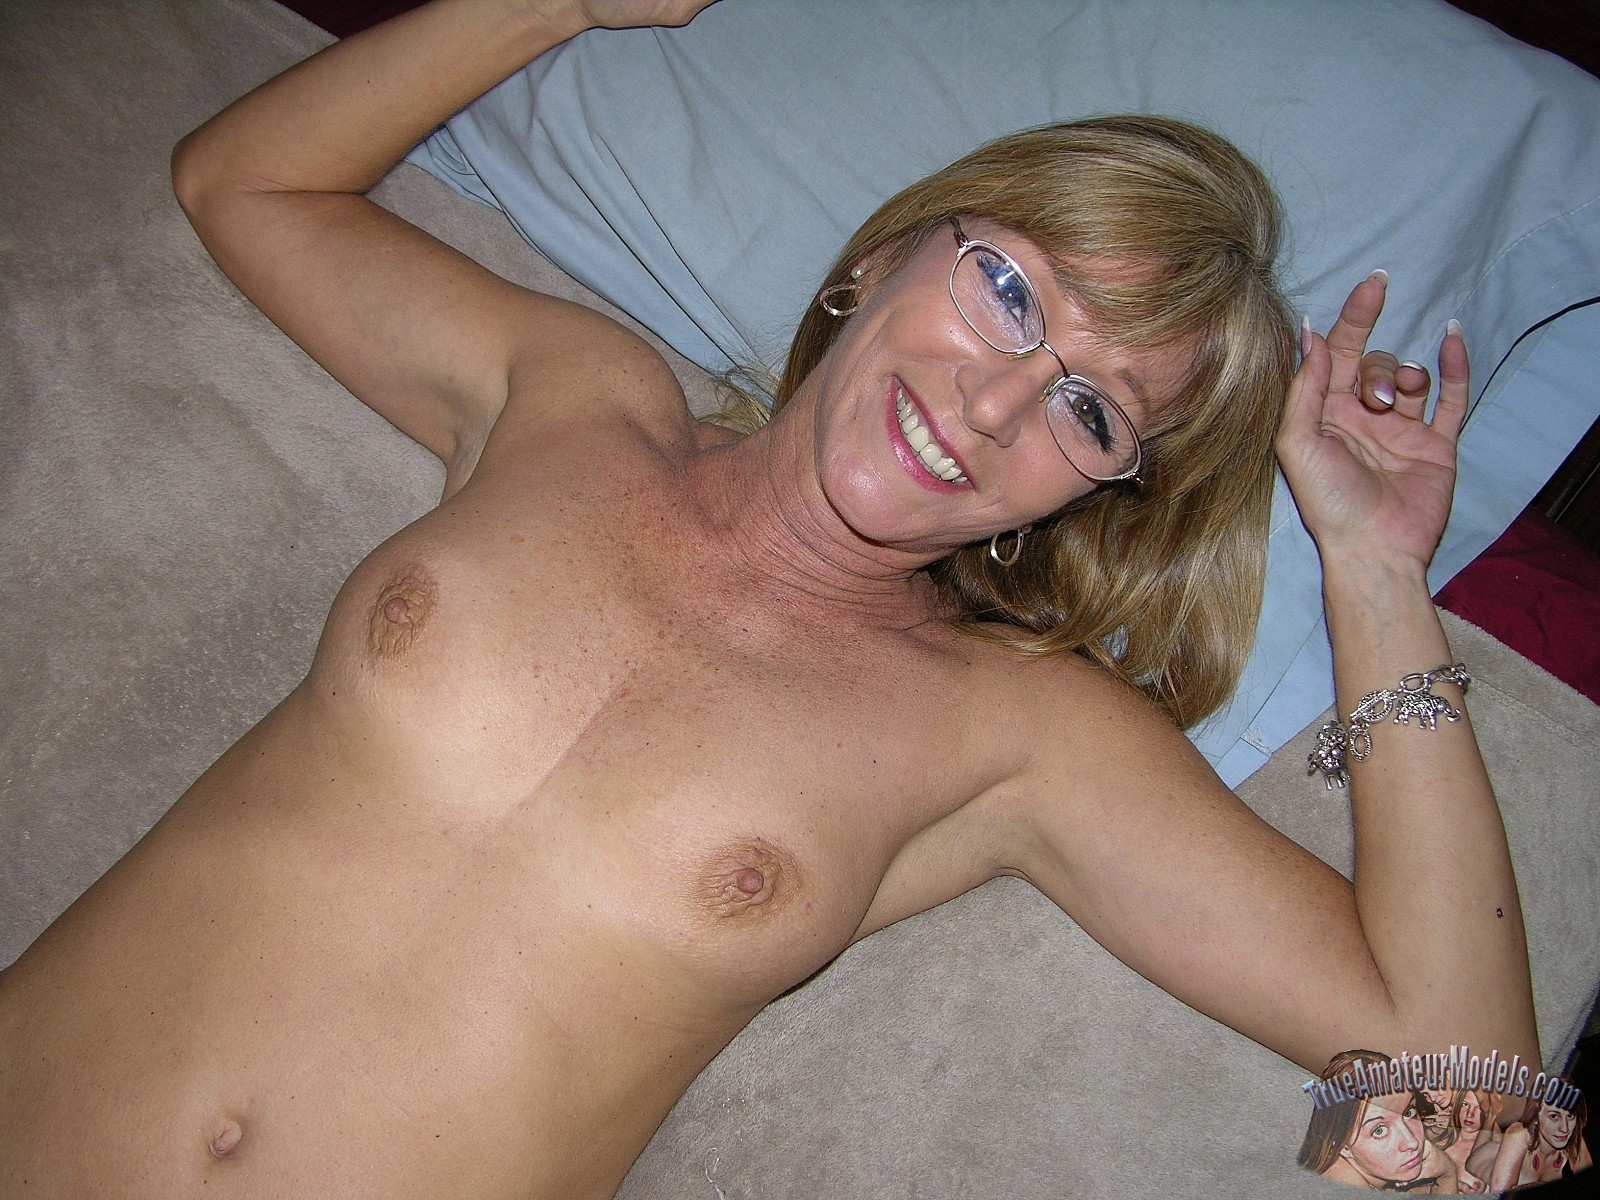 Amateur milf movies tumblr